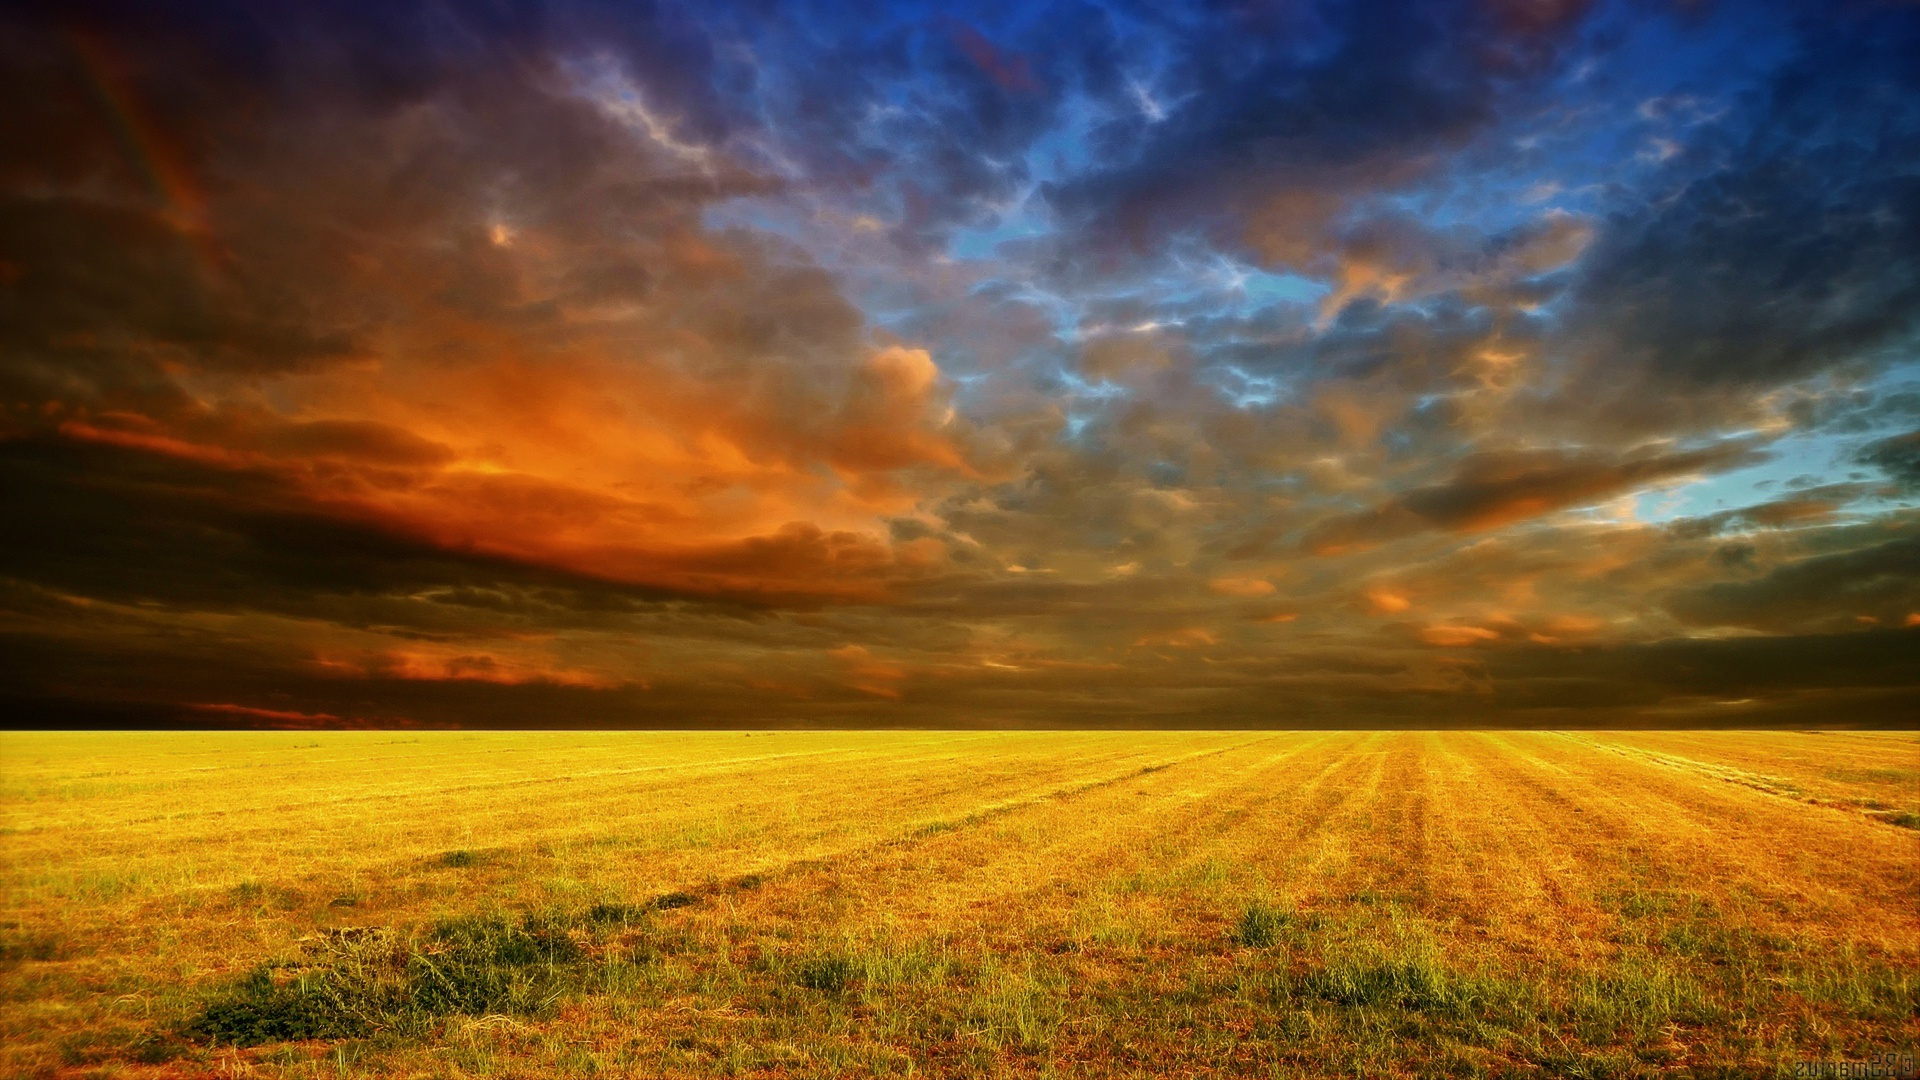 Sunset cornfield wallpaper | 1920x1080 | #32135